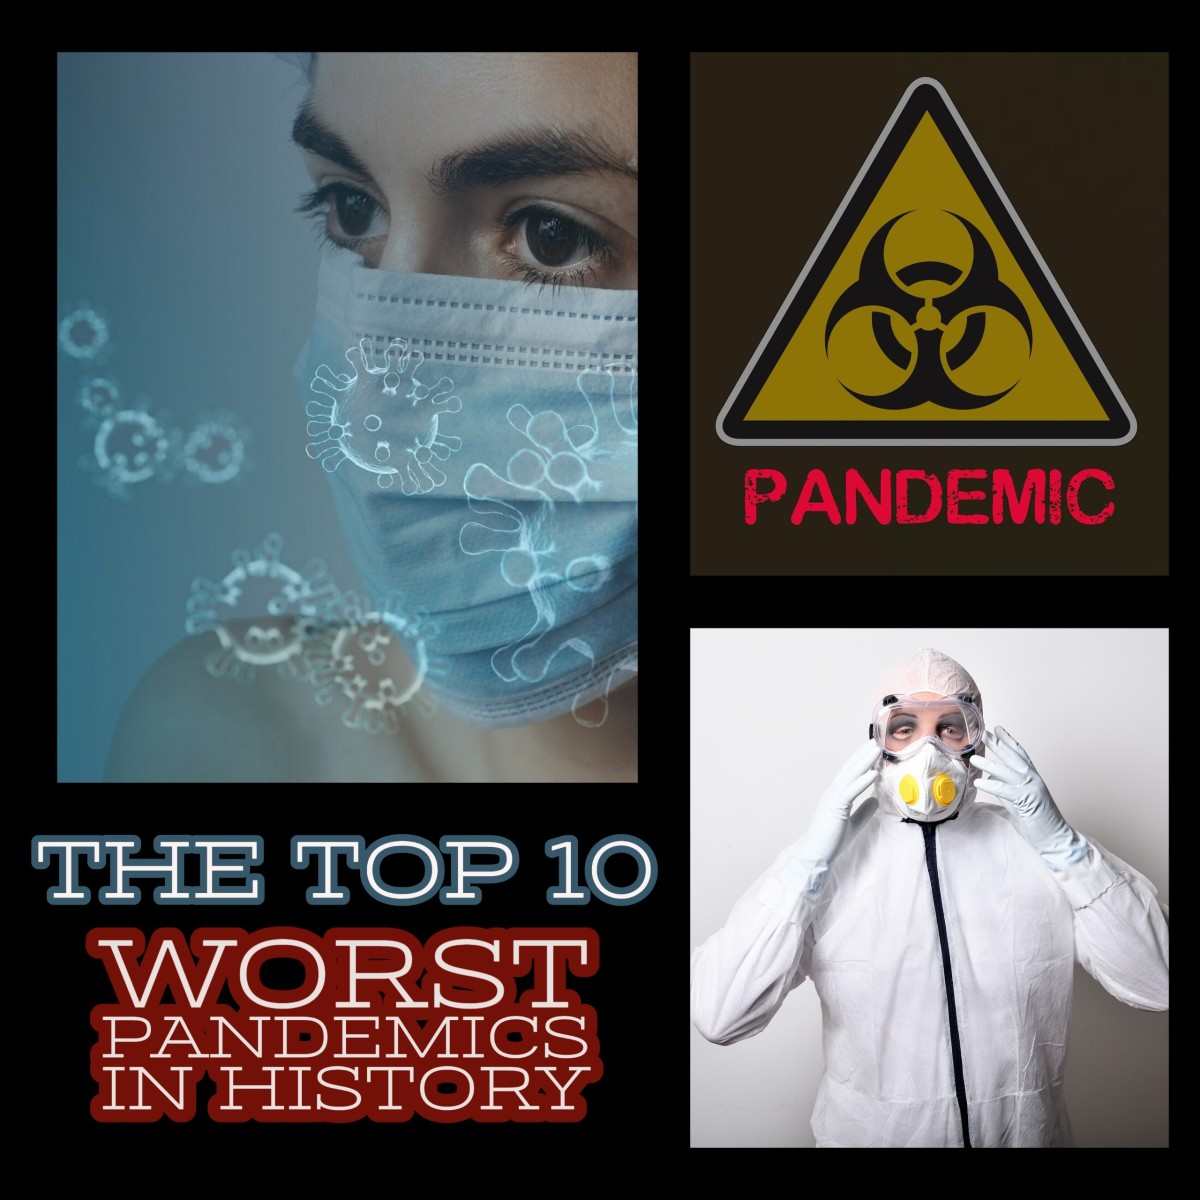 The 10 Worst Pandemics in History